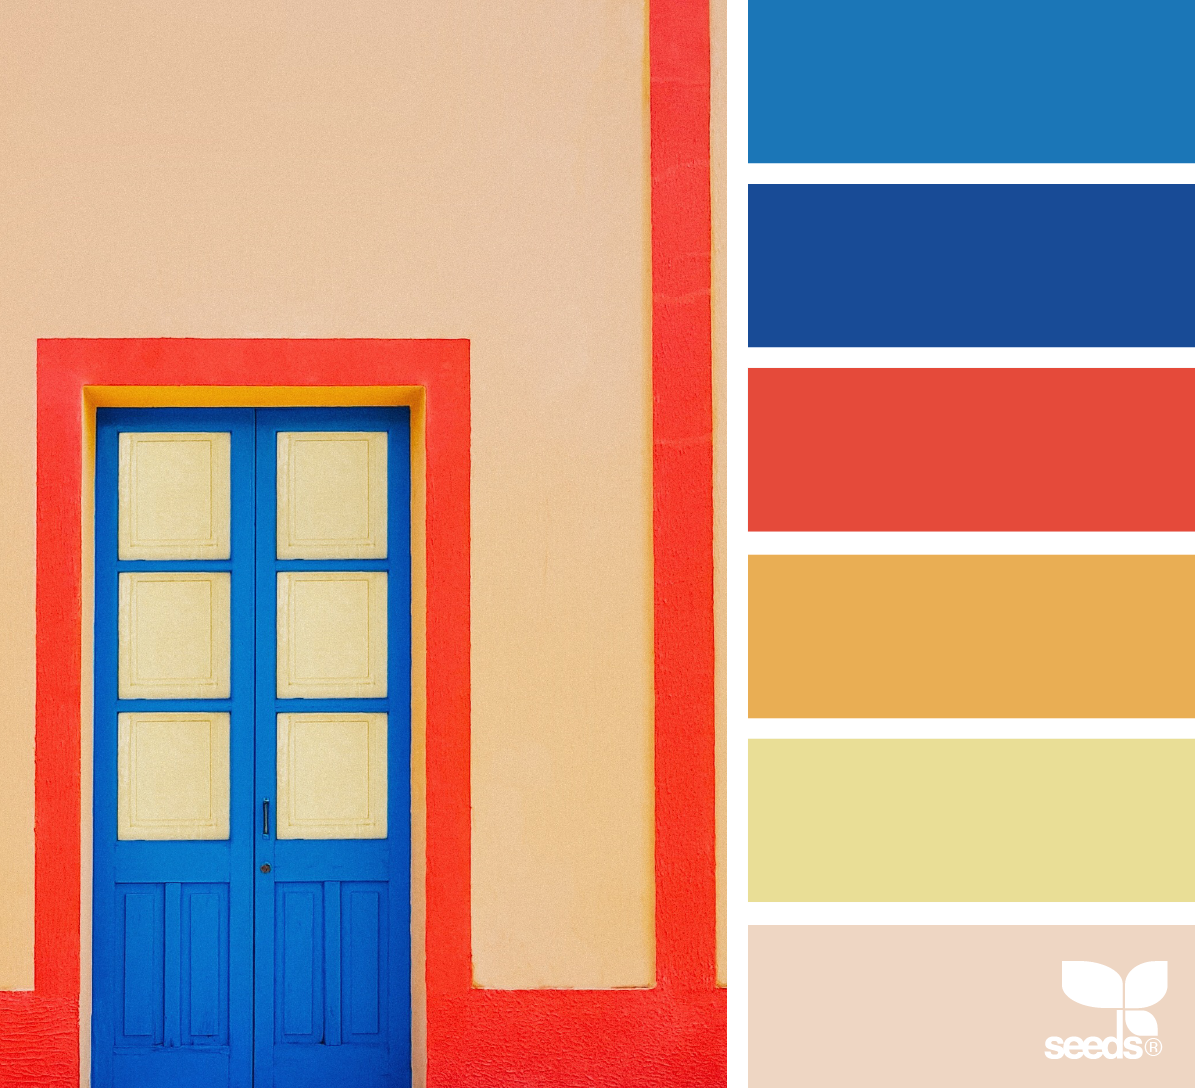 A Door Hues Design seeds, Bauhaus colors, Color balance